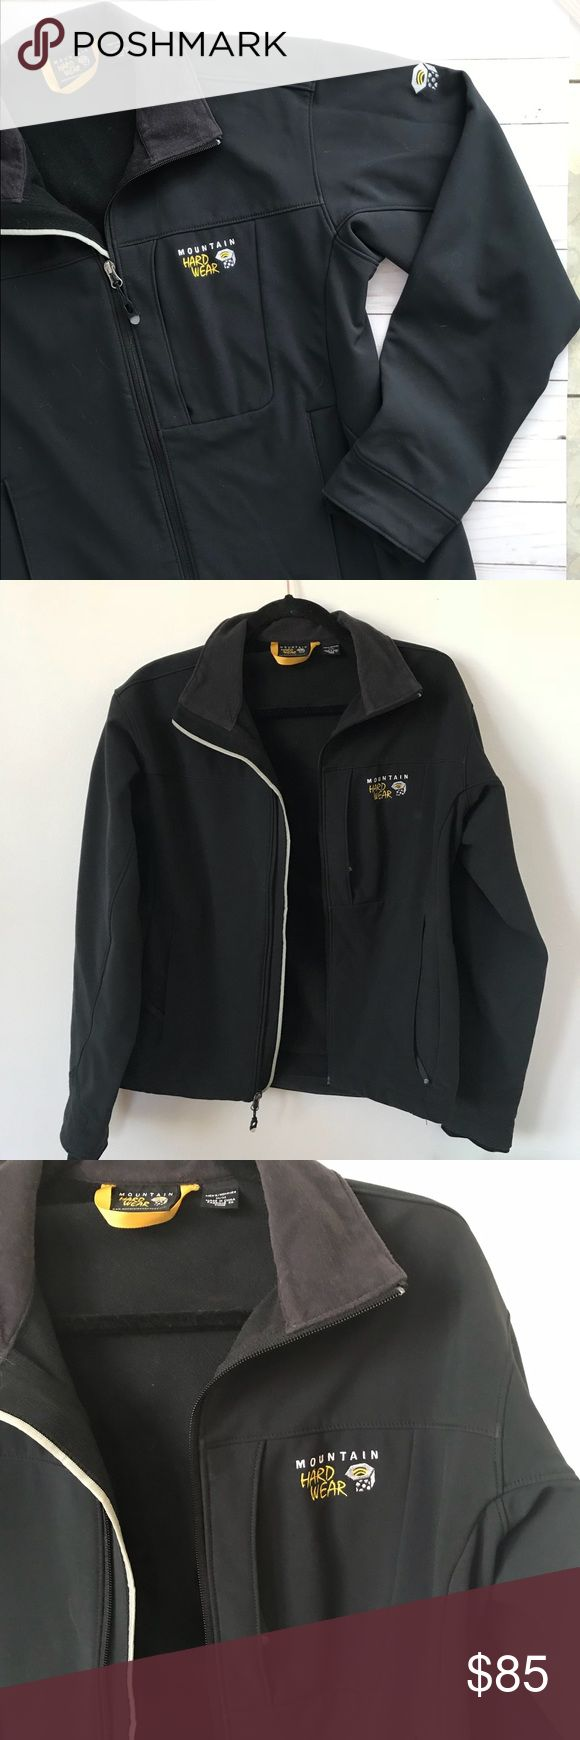 Mountain Hardwear • Android II Jacket A great jacket! Wind and water resistant. Athletic and stylish softshell. Excellent preowned condition! Mountain Hardwear Jackets & Coats Performance Jackets